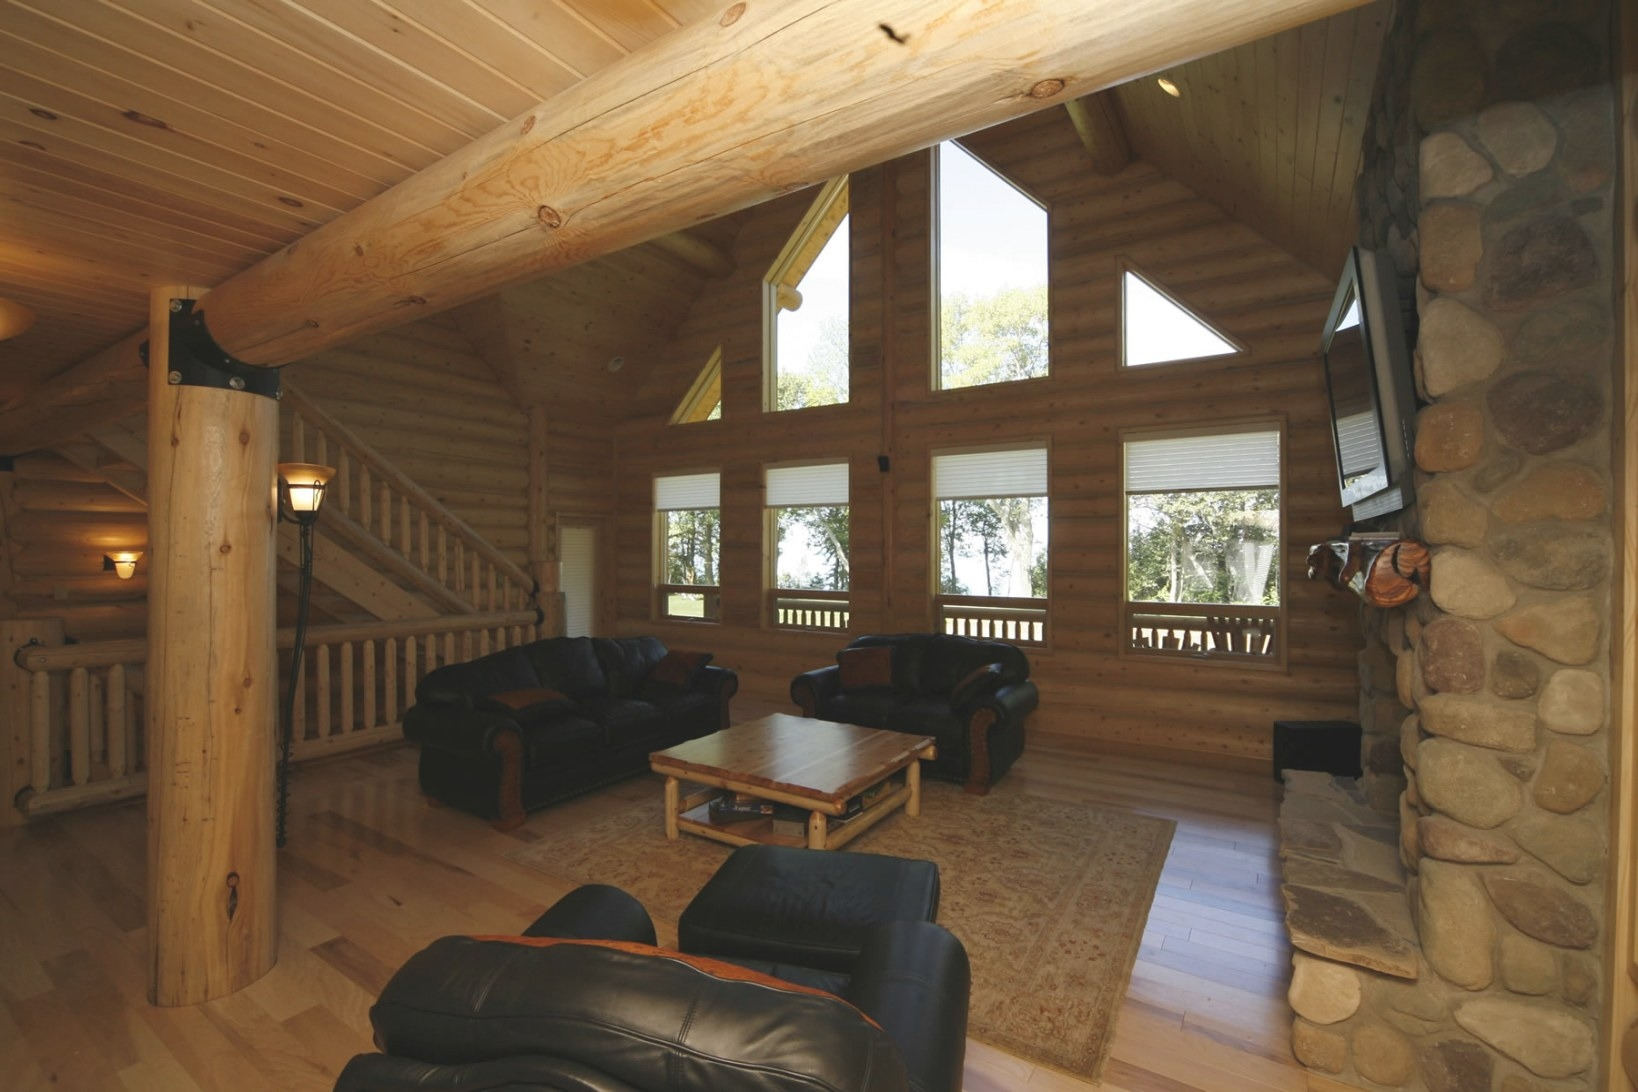 Whisper Creek Log Homes | Oke Woodsmith Building Systems Inc. regarding Whisper Creek Log Homes